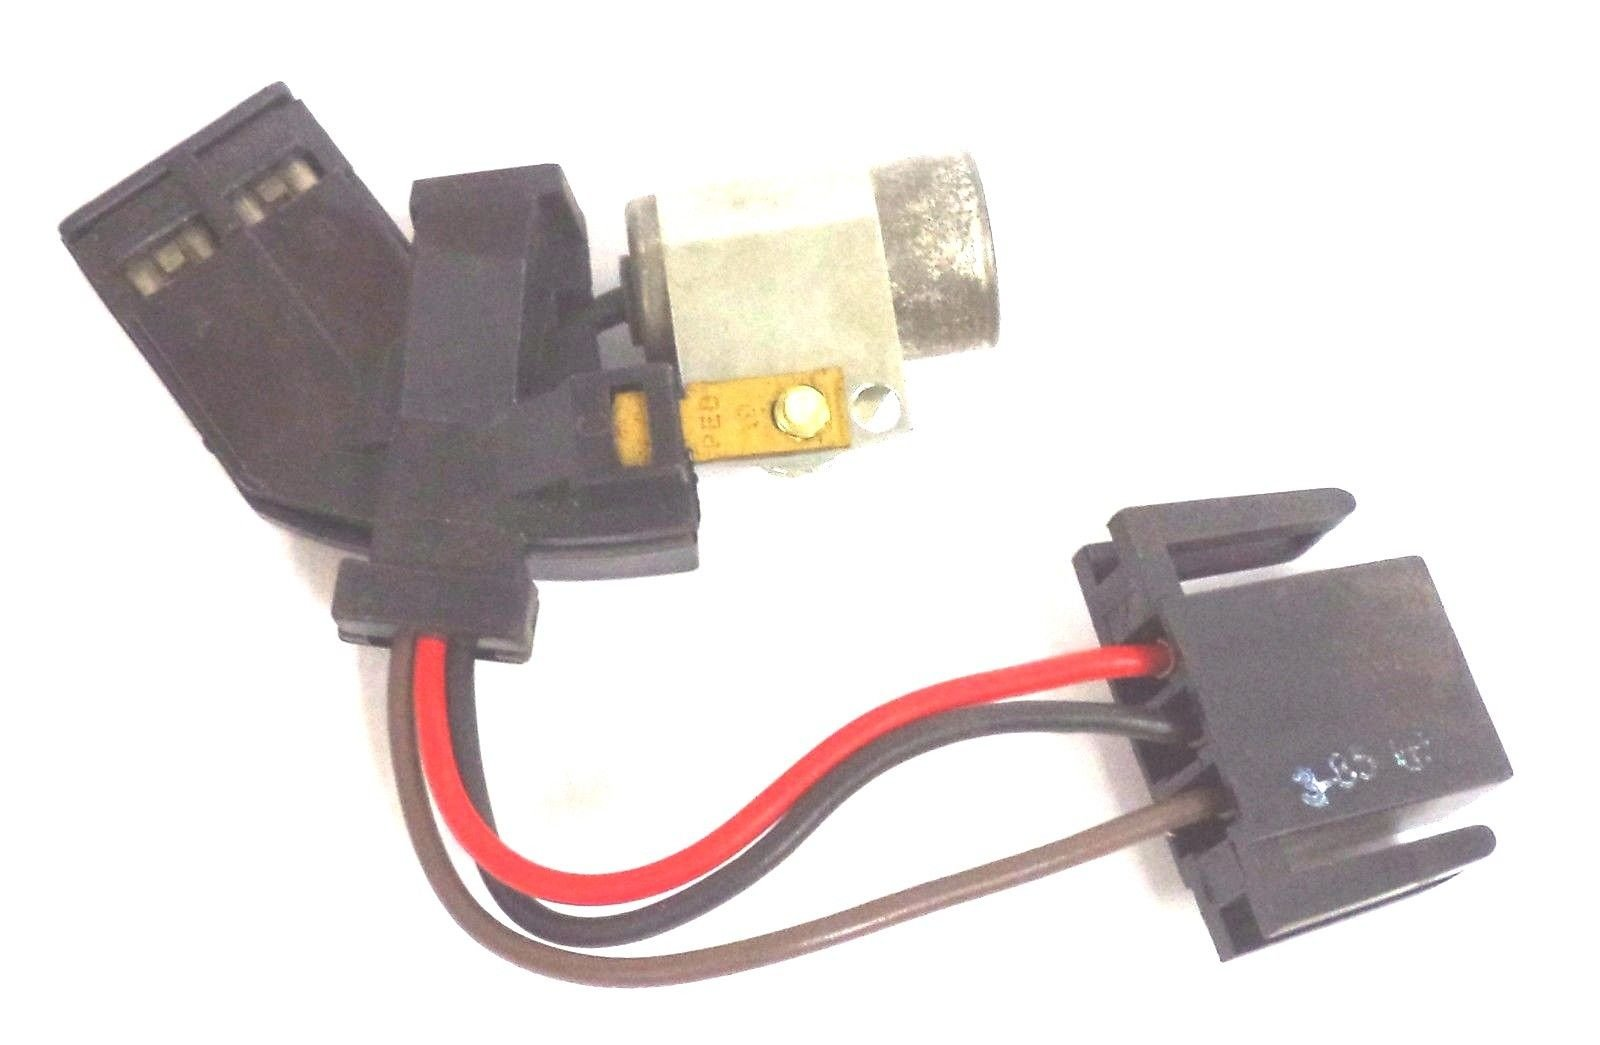 Proven Valu 410262 Condenser Ignition Part Approximately 3'' Wire by Proven Valu